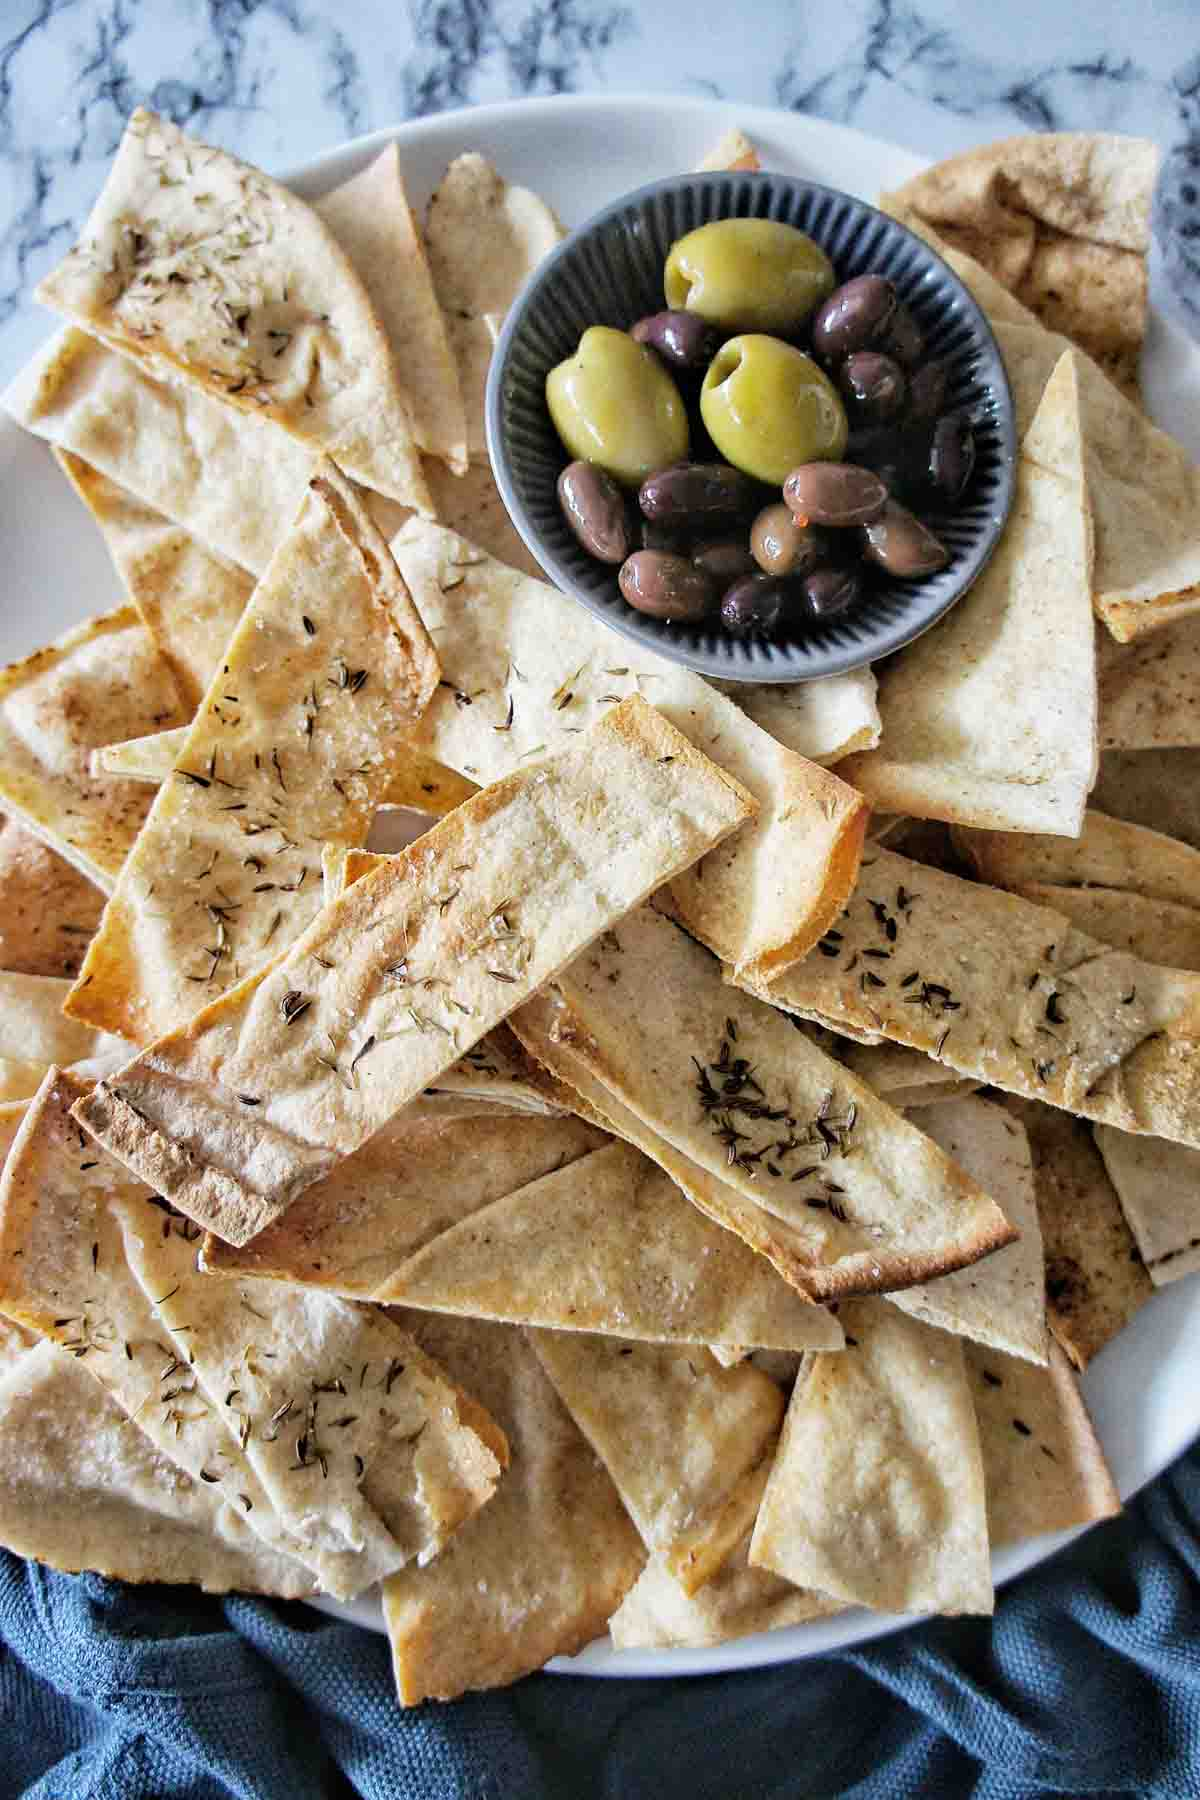 Oven Baked Pita Chips with dried herbs on a white plate with olives